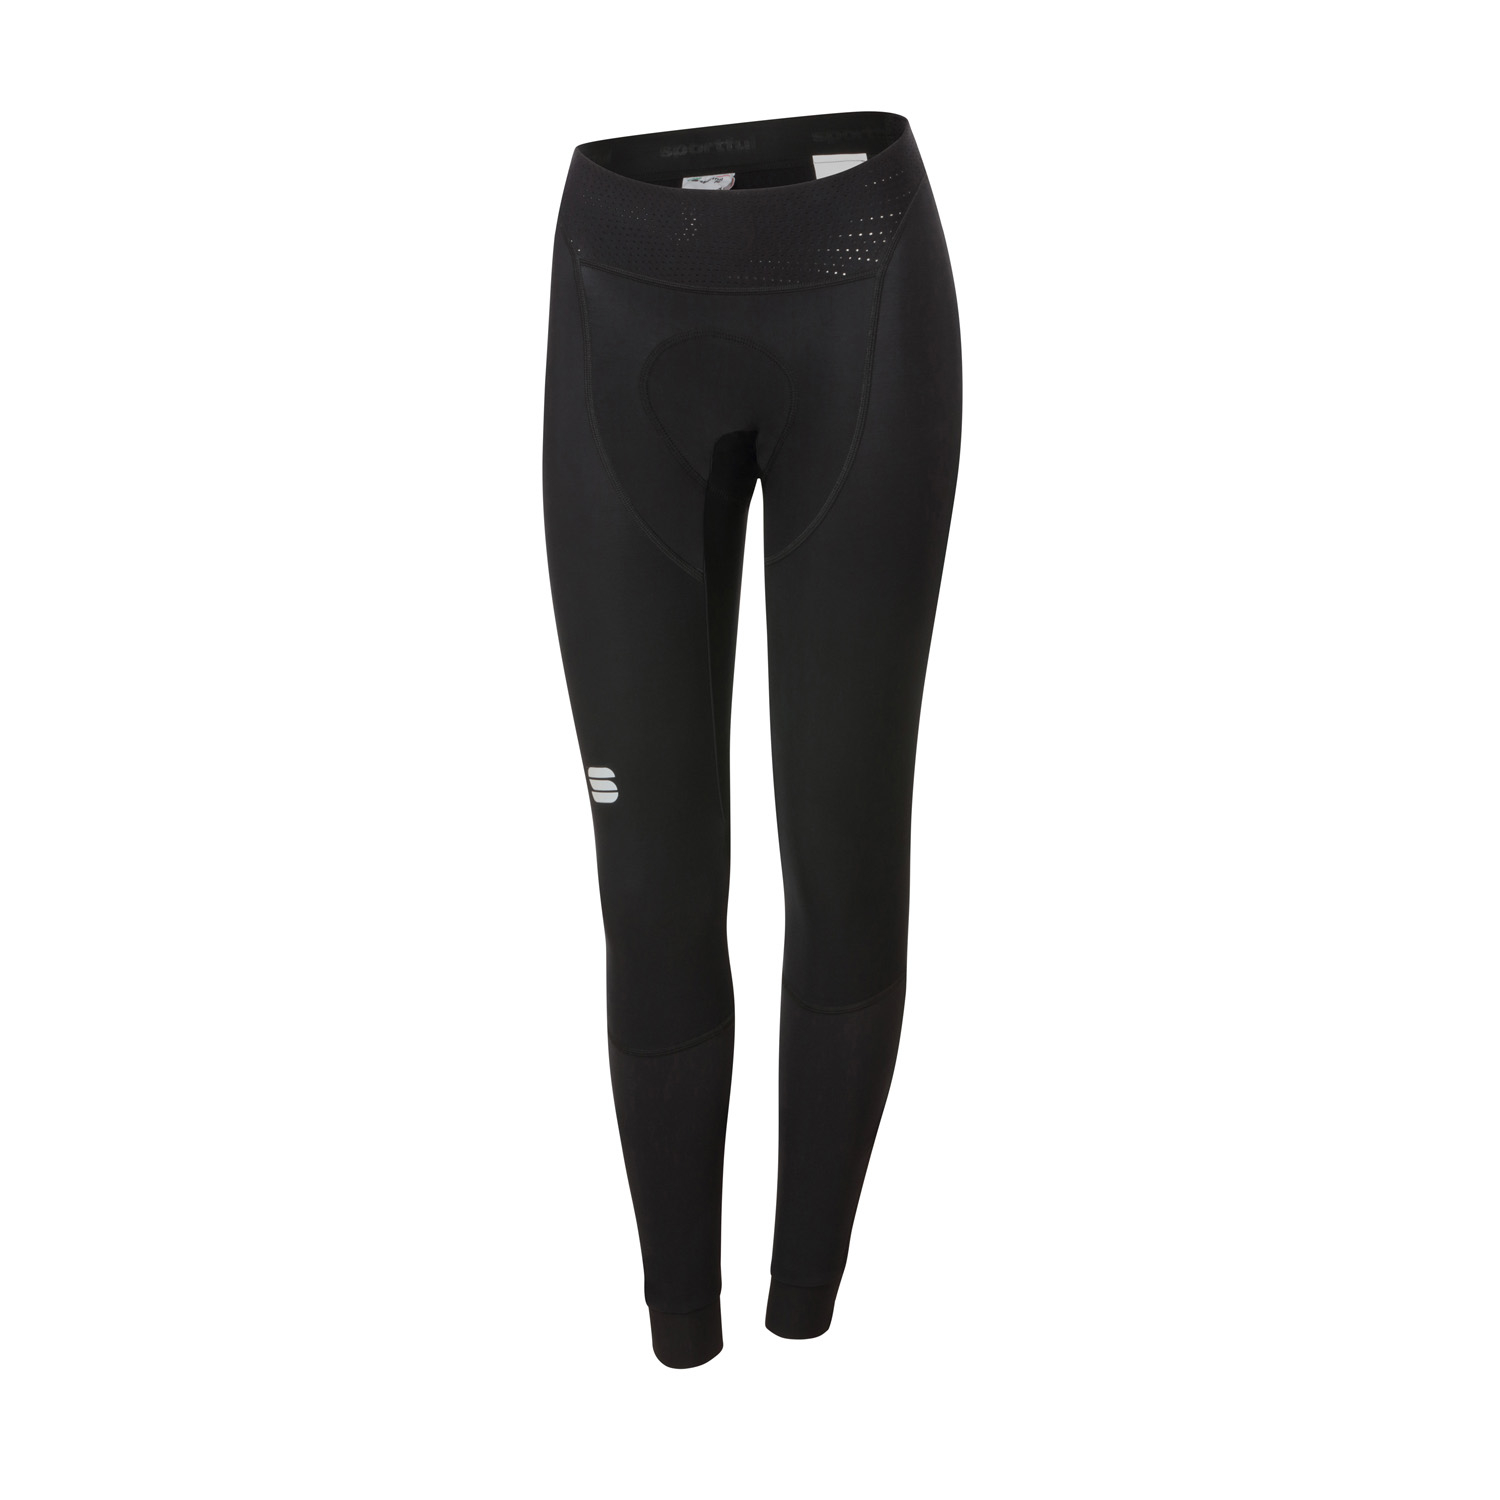 | Sportful Fietsbroek lang zonder bretels Dames Zwart - TOTAL COMFORT WOMAN TIGHT BLACK